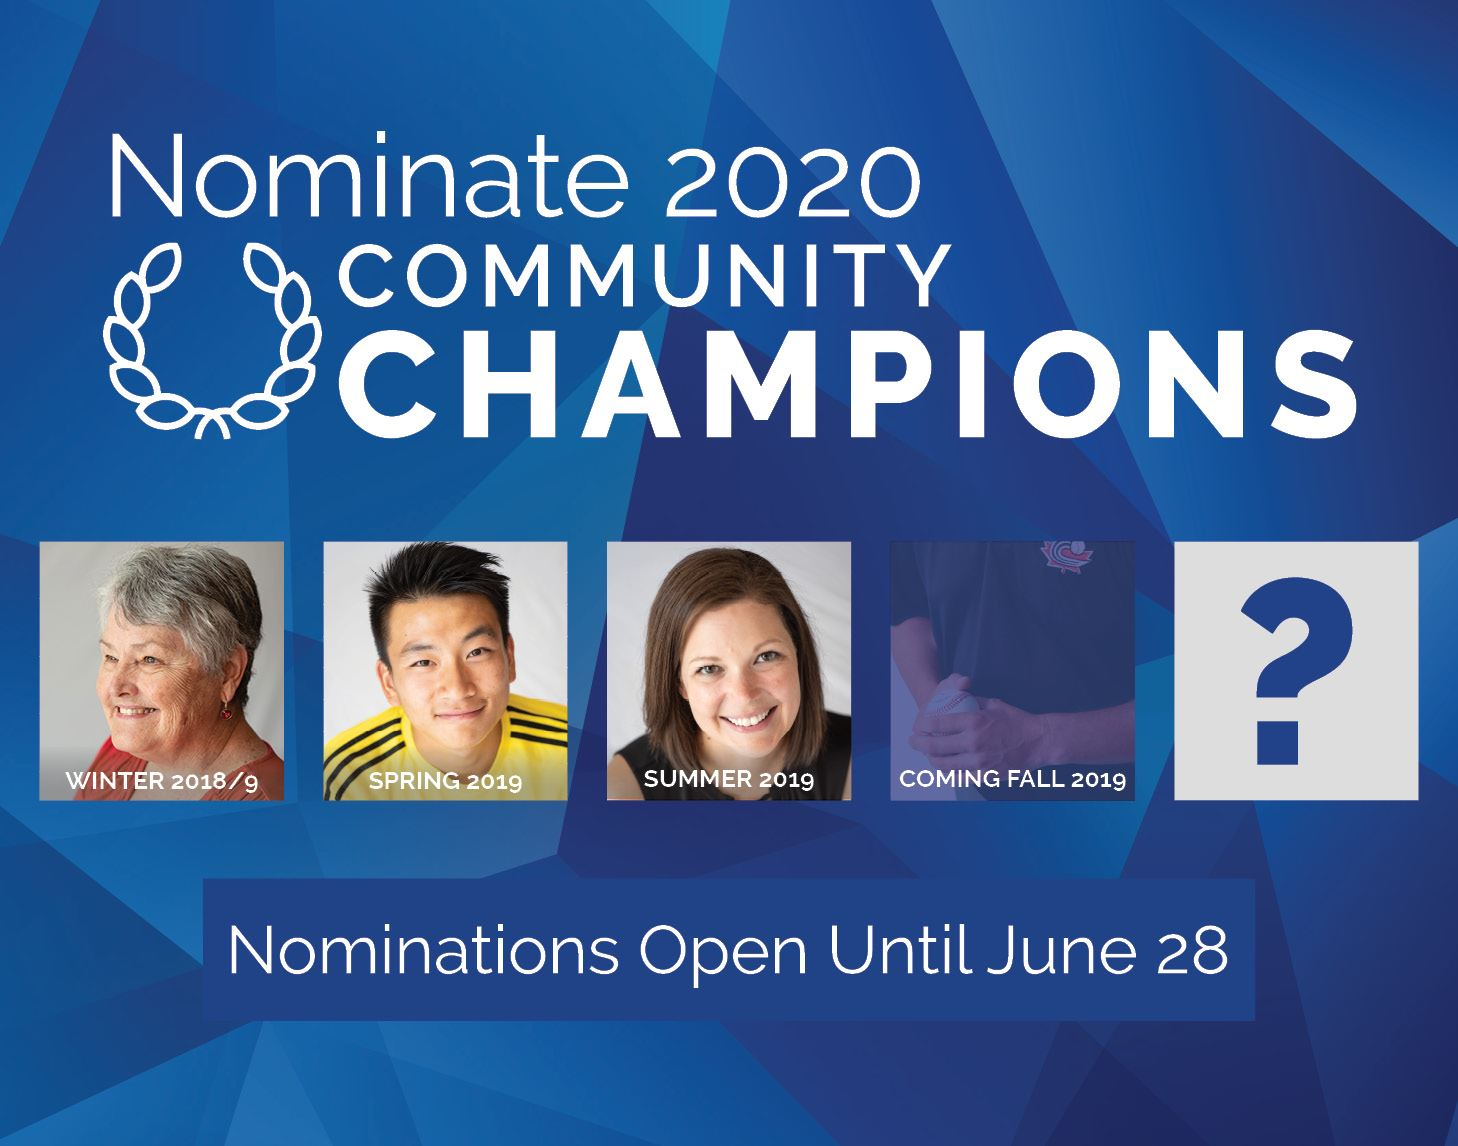 Community Champions 2020 Nominations!